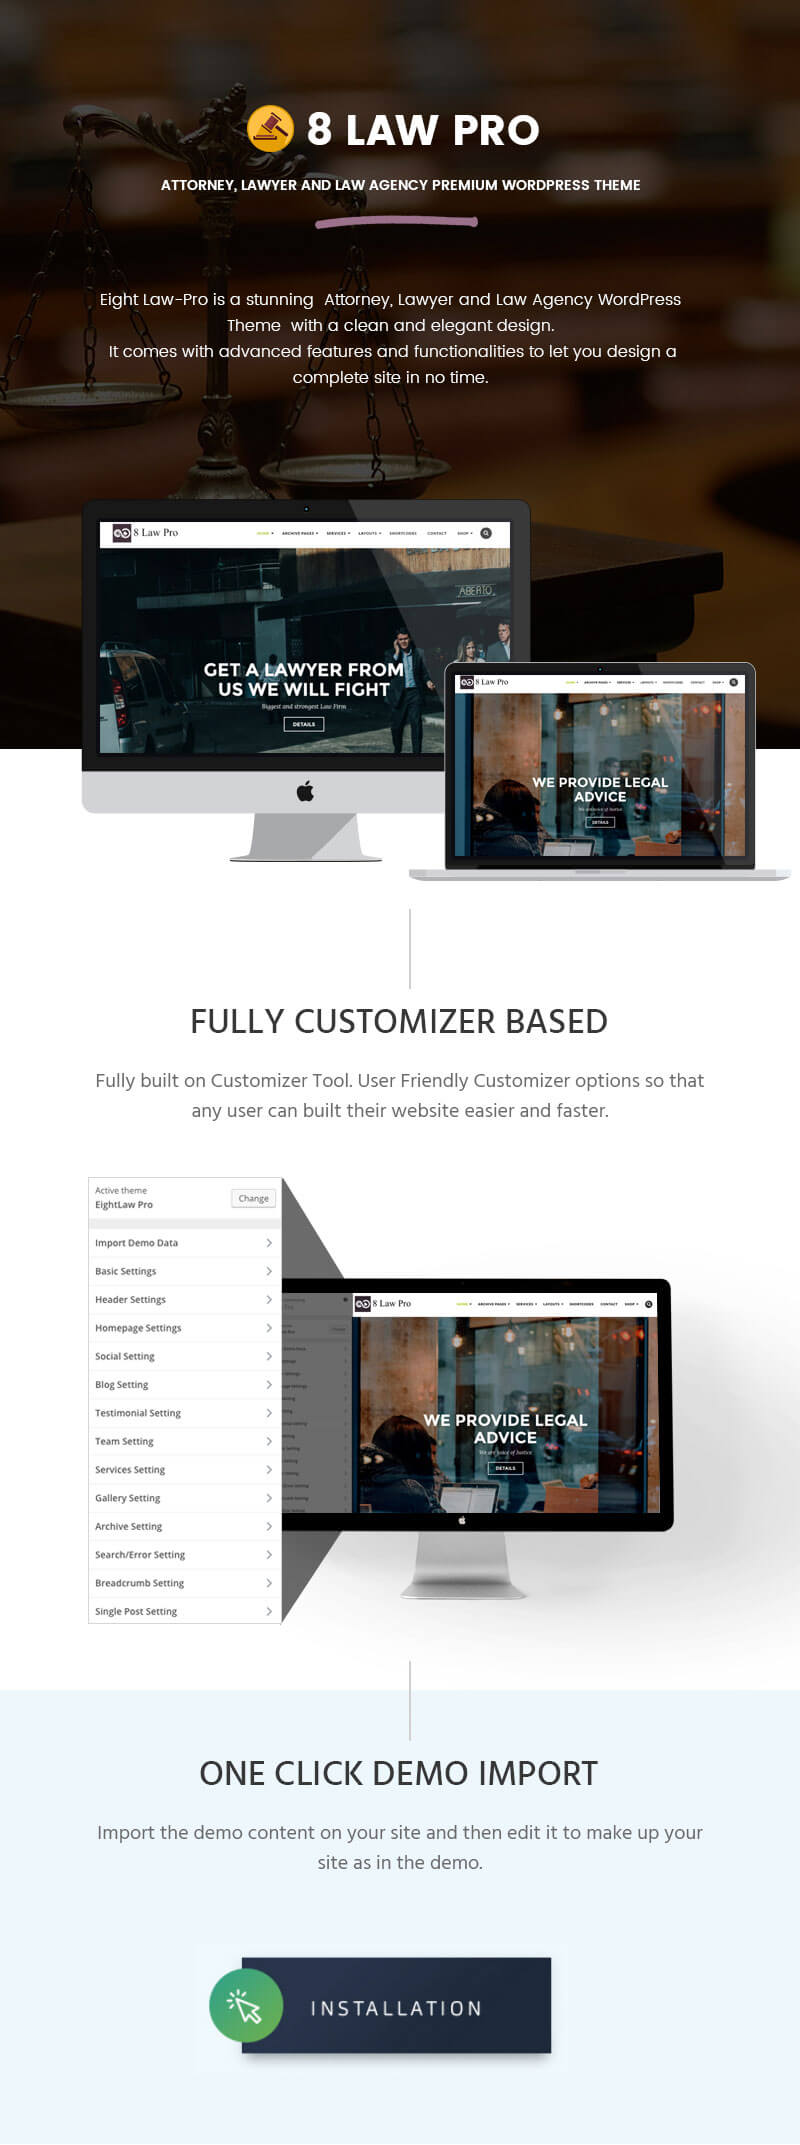 EightLaw Pro – Premium Lawyer WordPress Theme For Law Firm